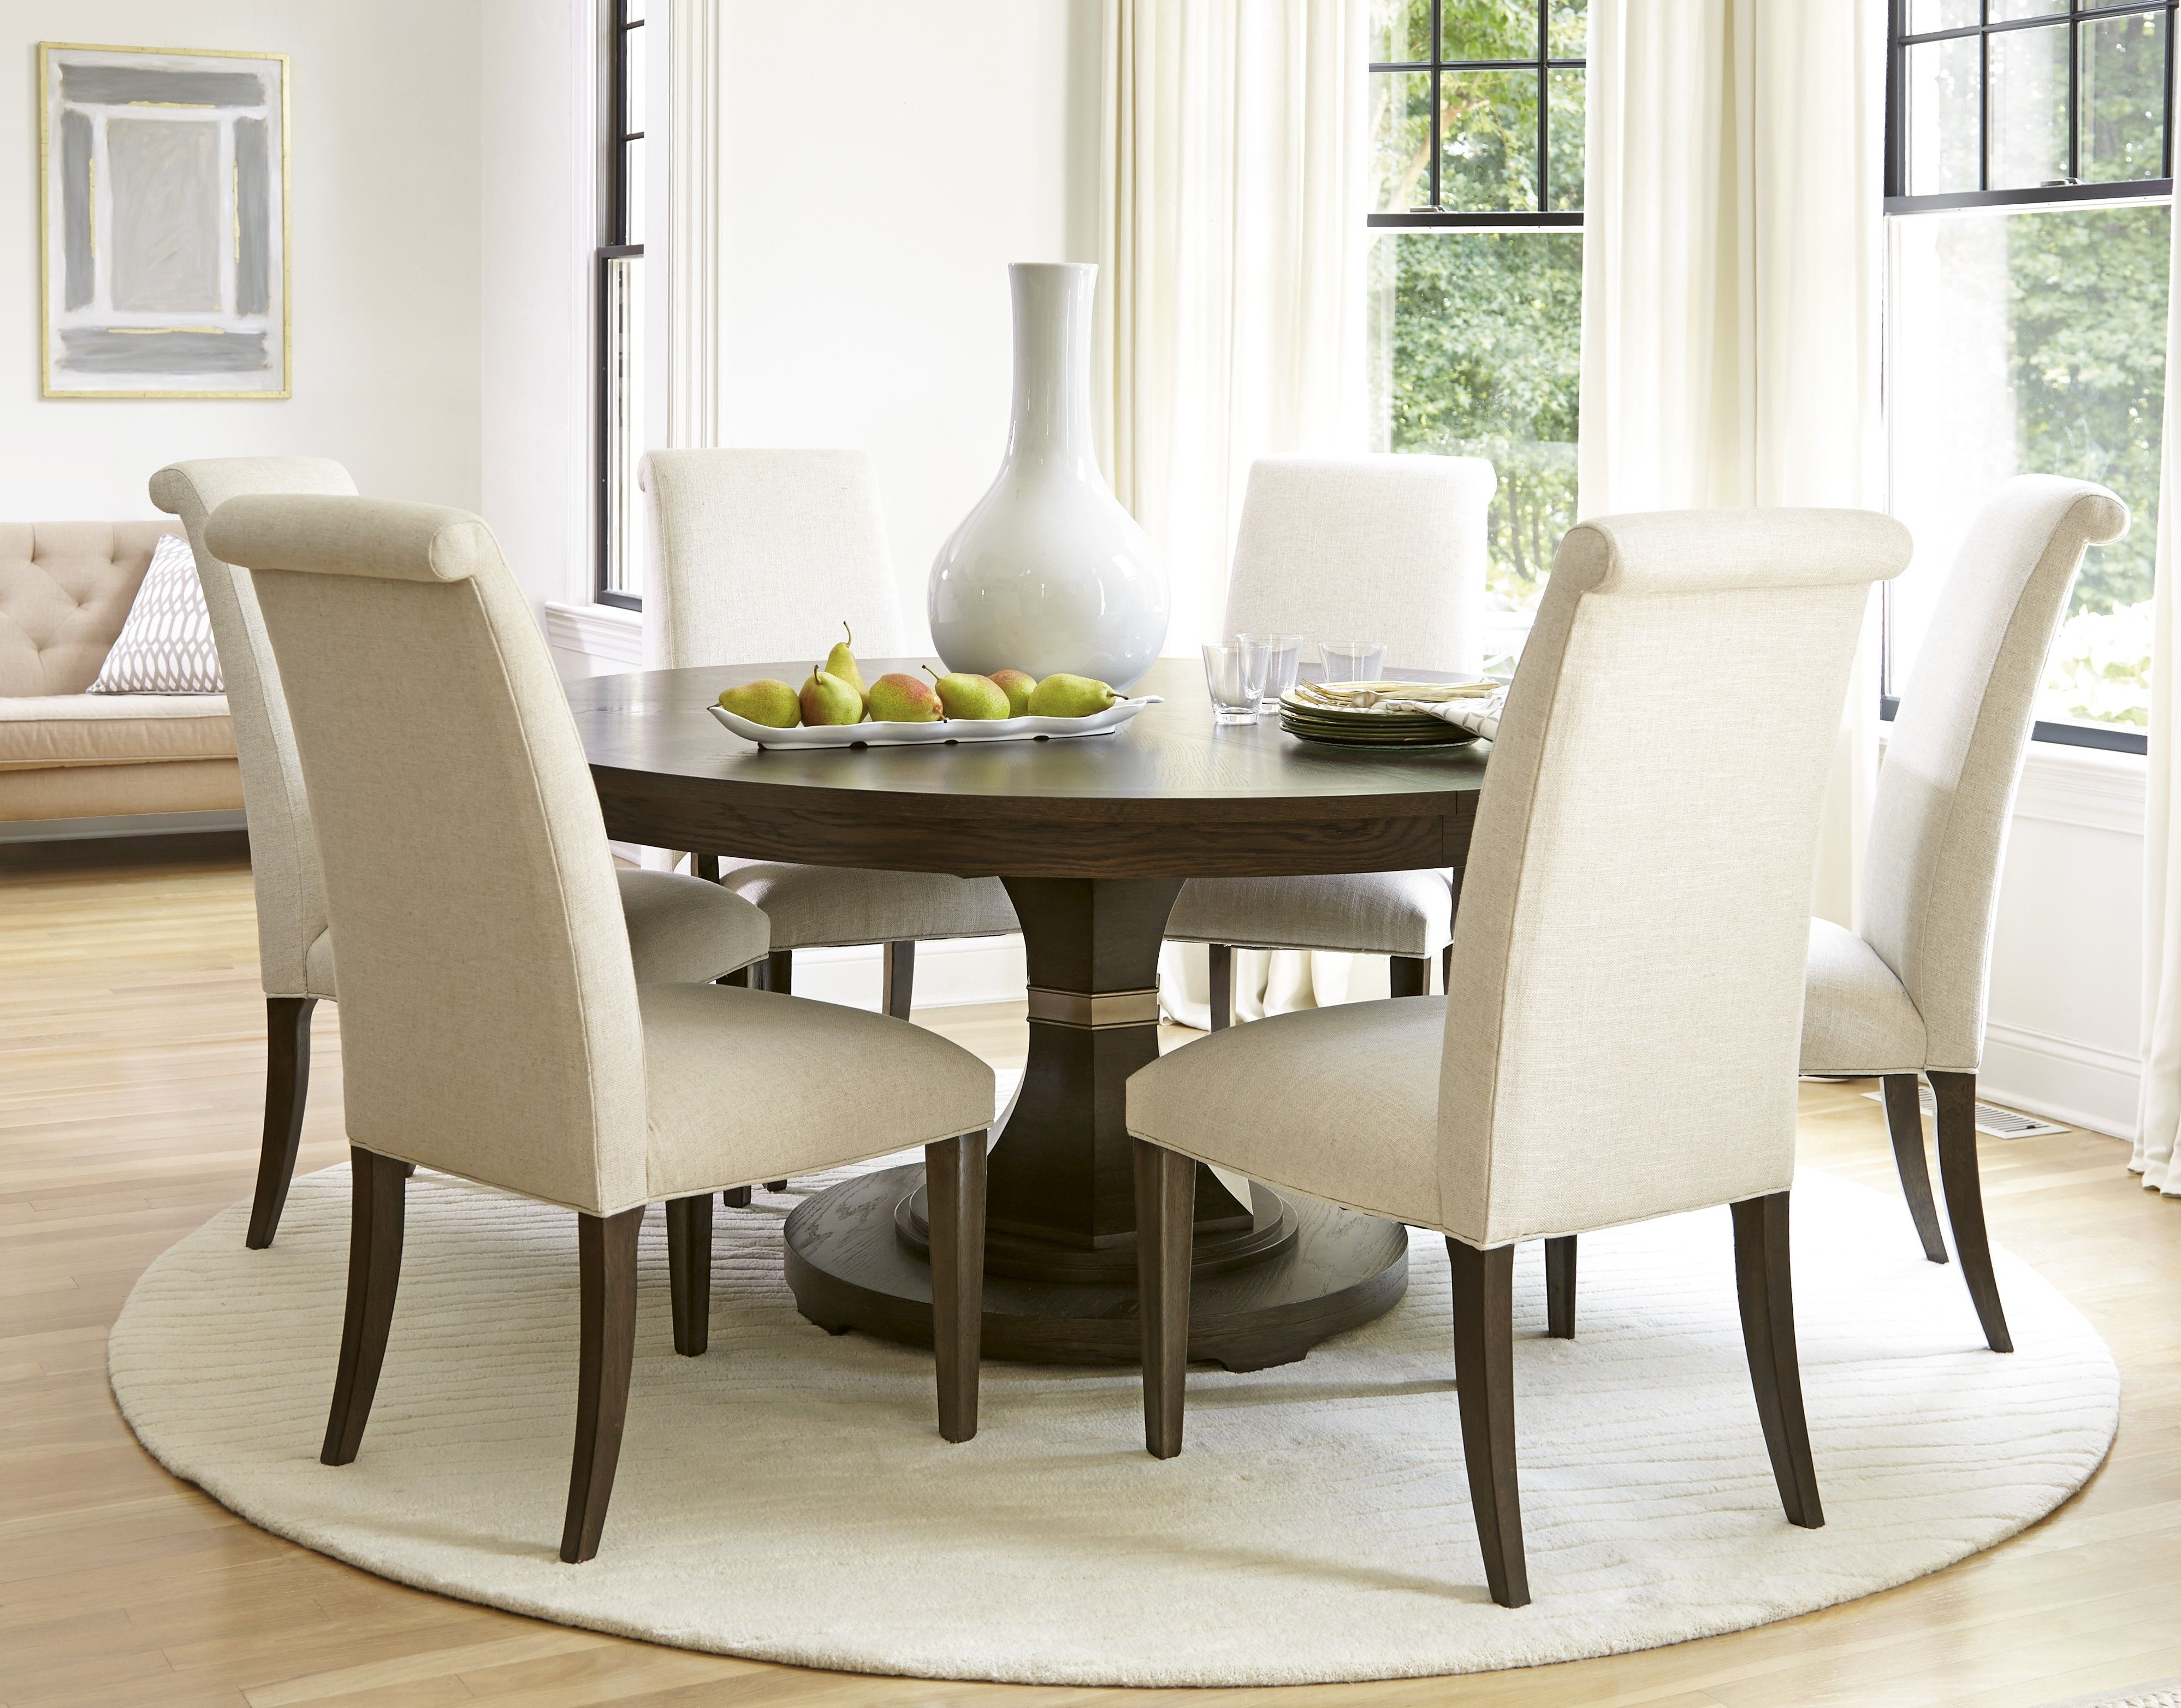 In Round Dining Table Set DINING FURNITURE Pinterest Round - 42 round dining table and chairs